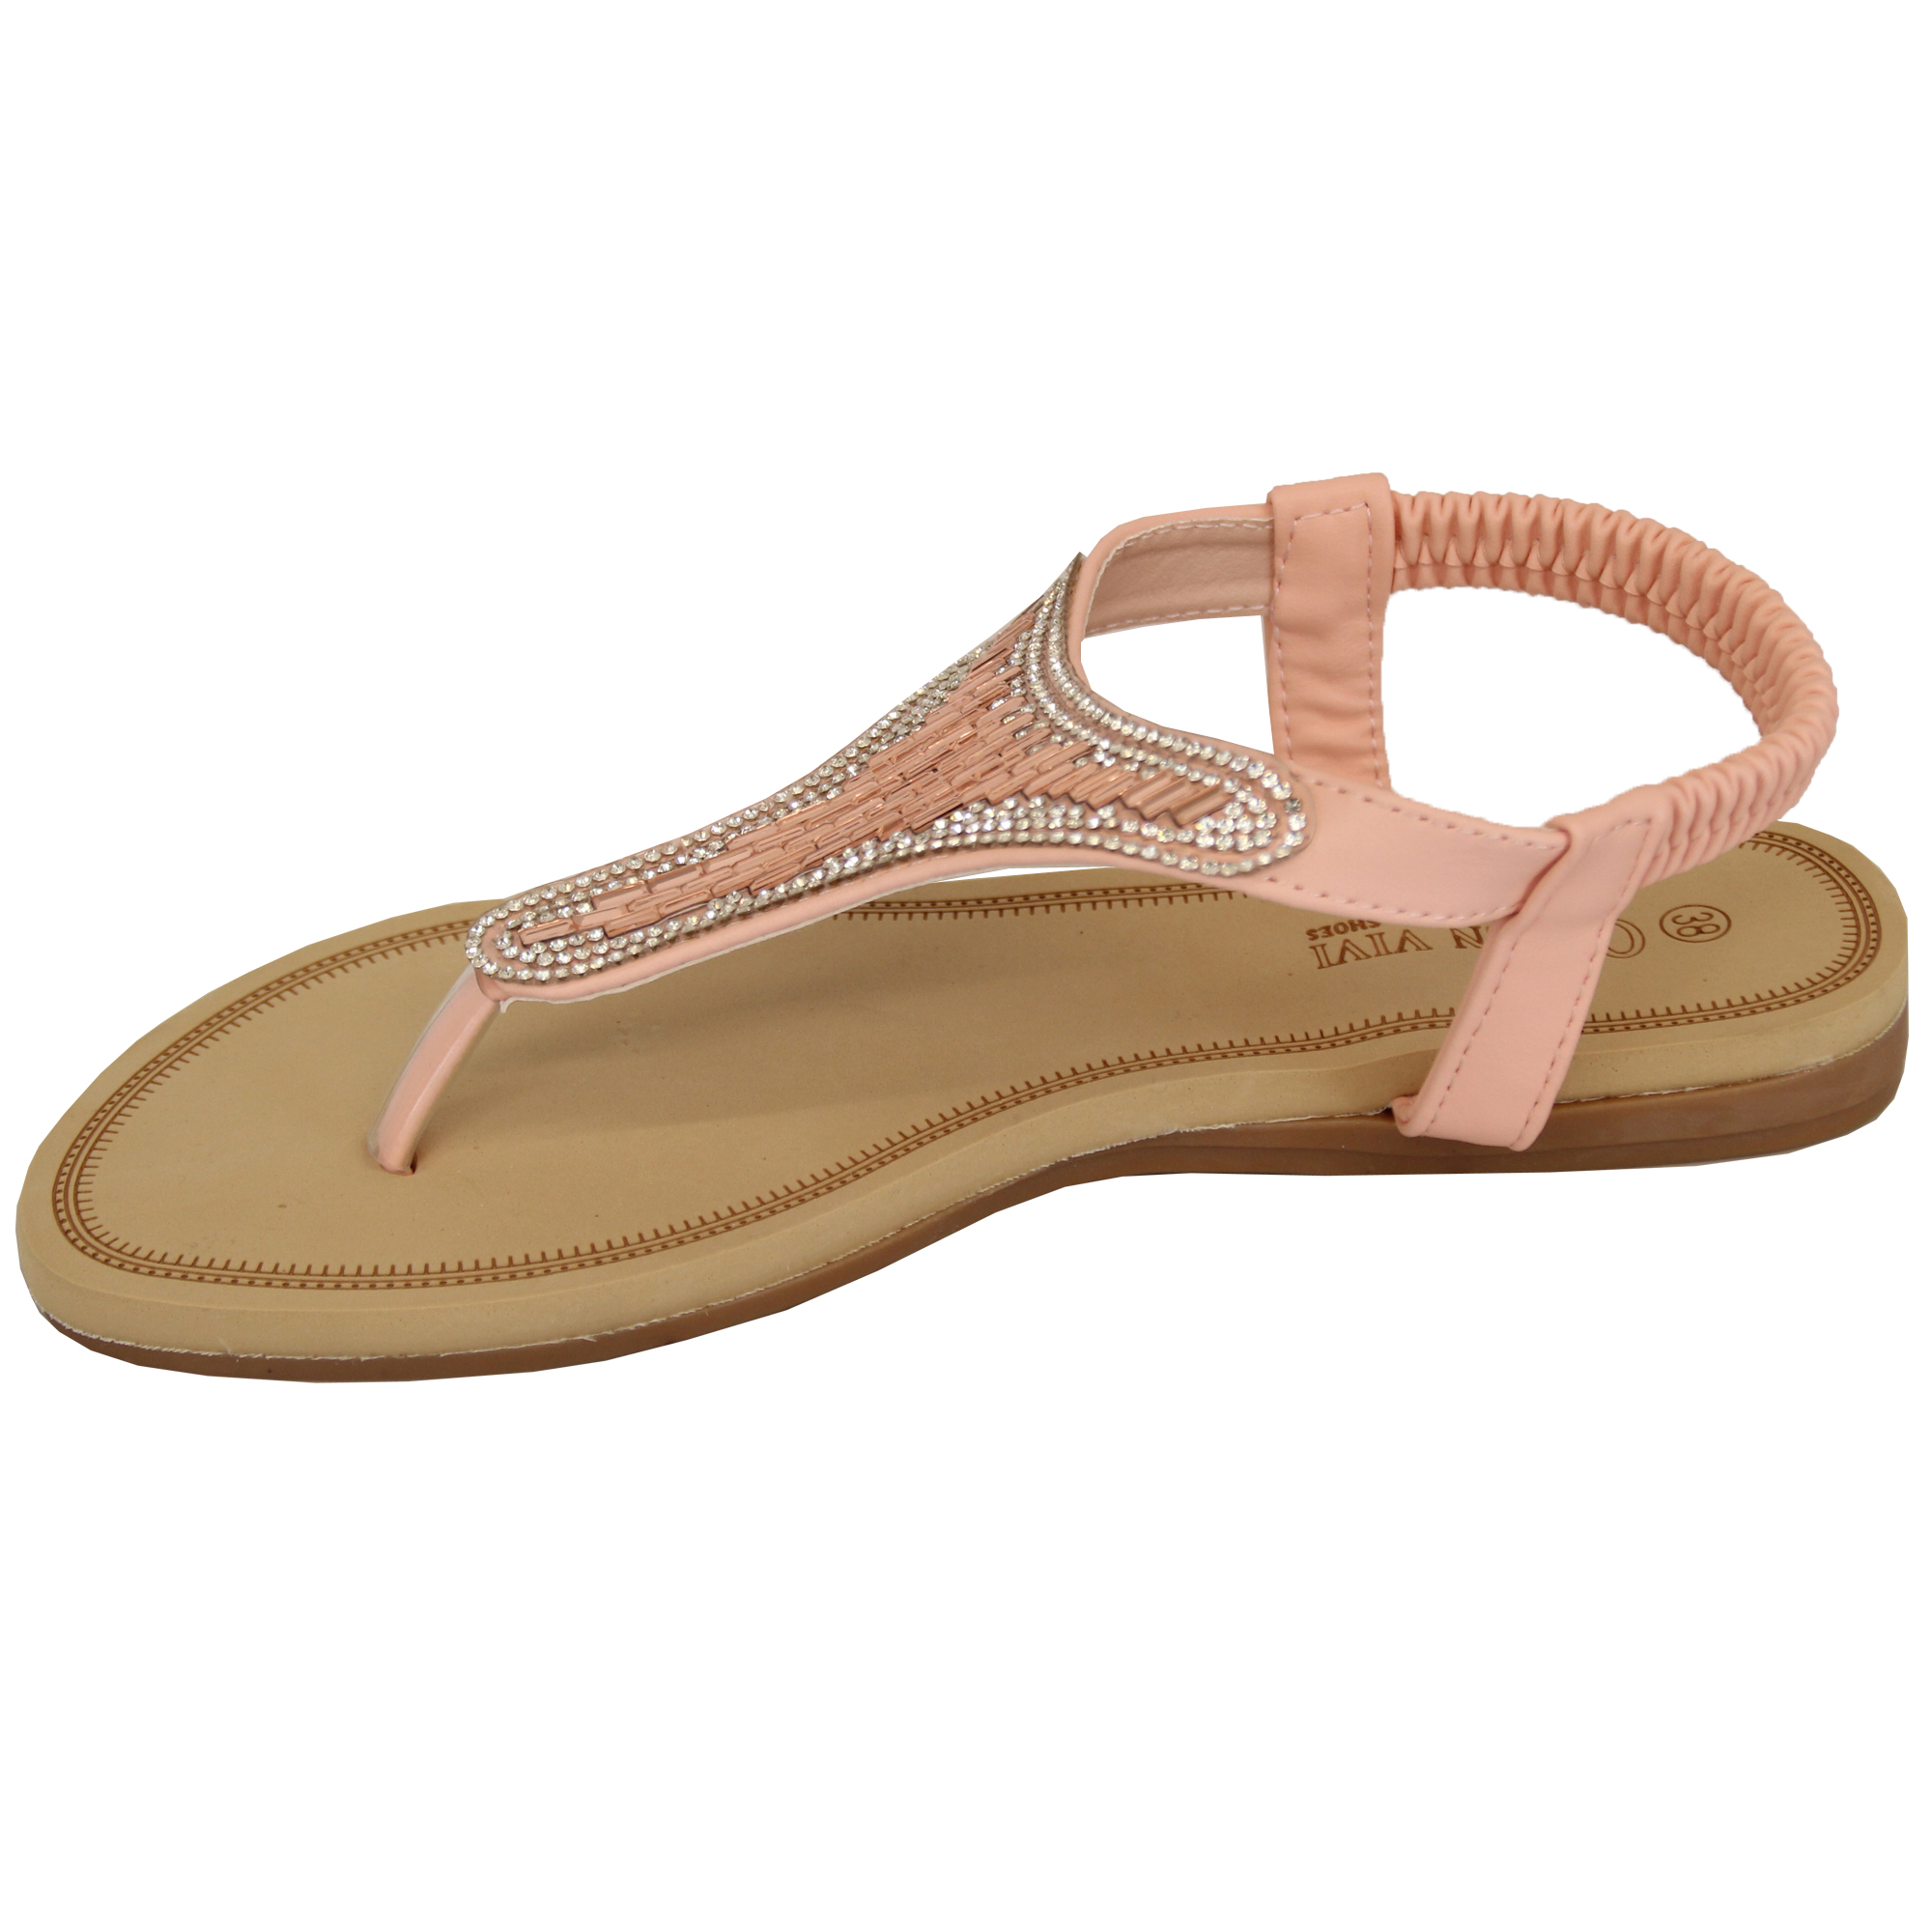 Ladies-Diamante-Sandals-Womens-Slip-On-Toe-Post-Shoes-Party-Wedding-Fashion-New thumbnail 6